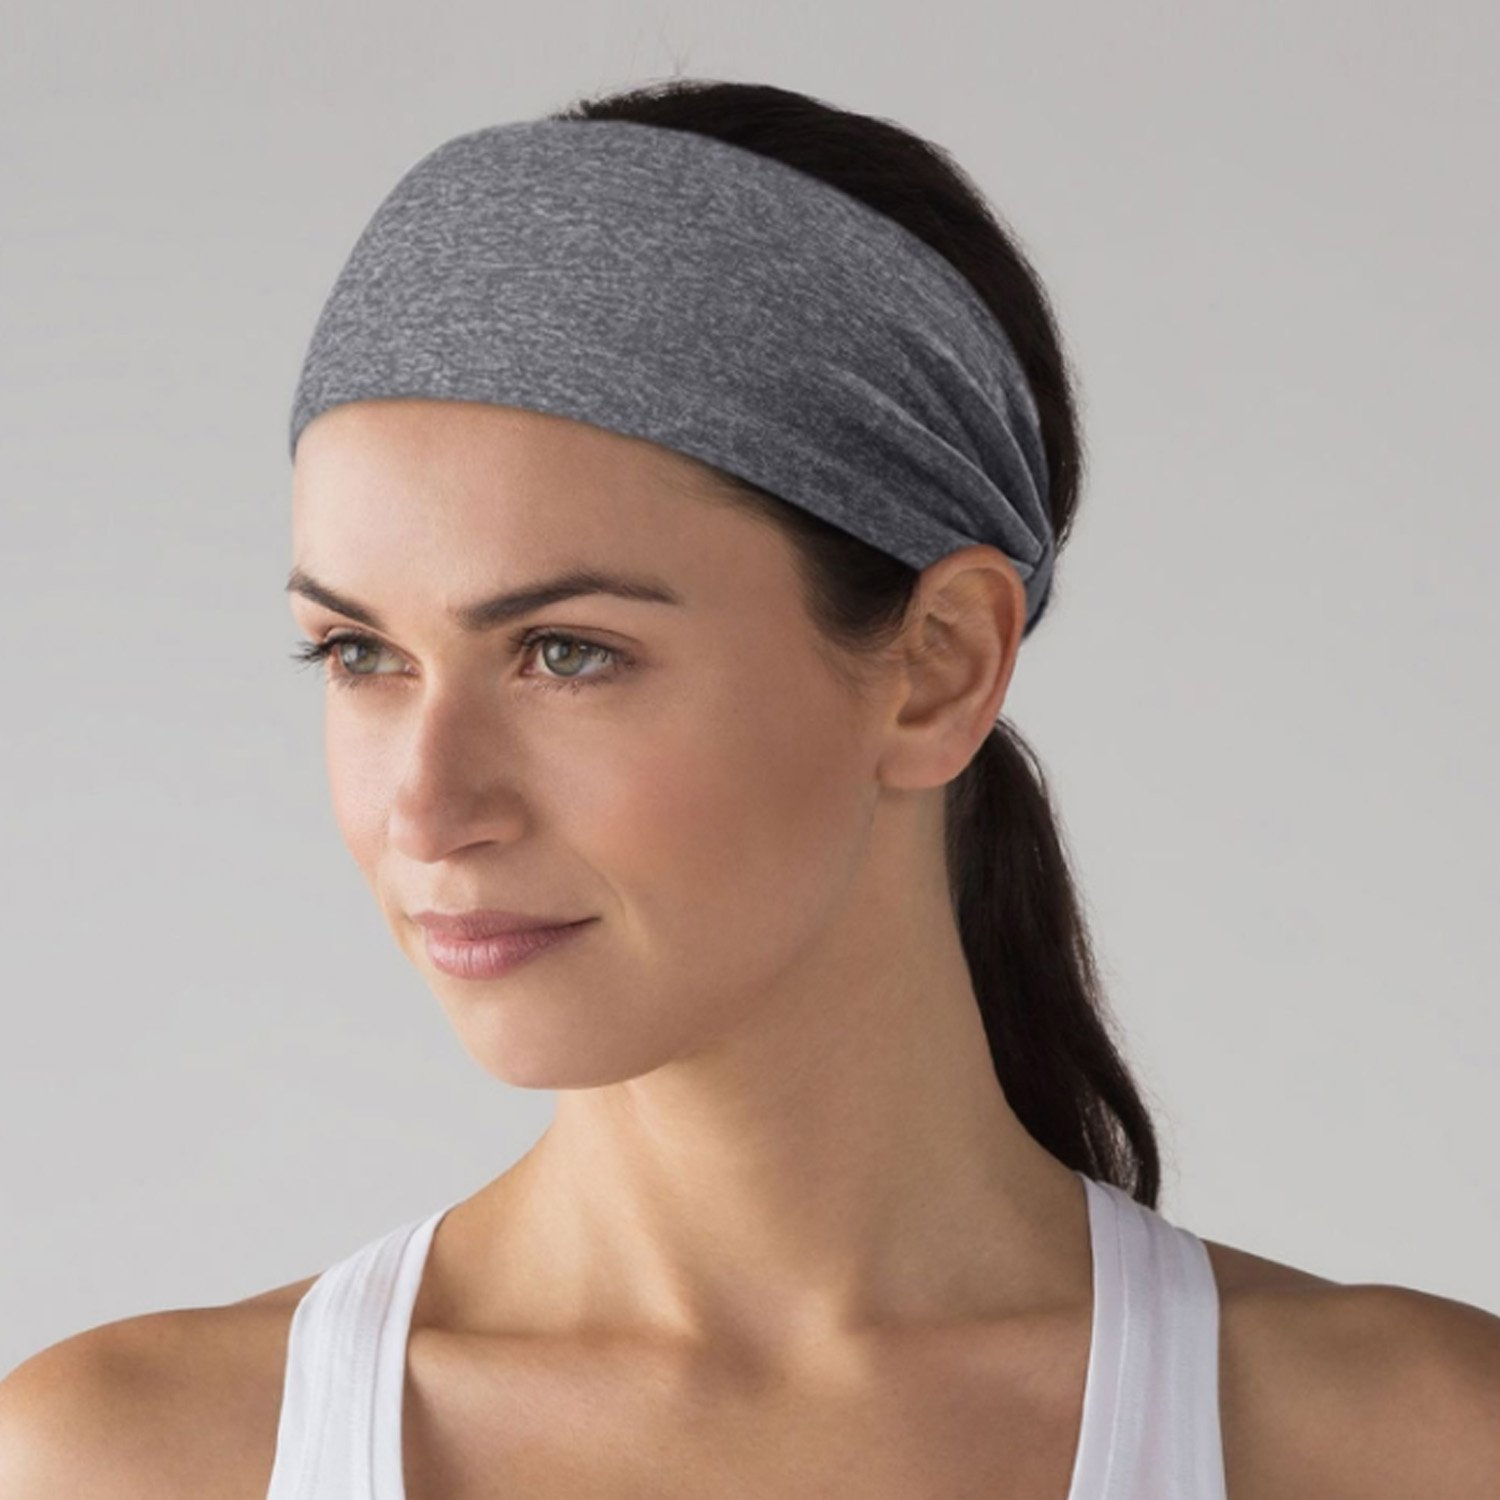 ETCBUYS Sports Fitness Headband - Athletic Womens Headband and Work-Out  Head Wrap Sweatband For d005d614c6b4